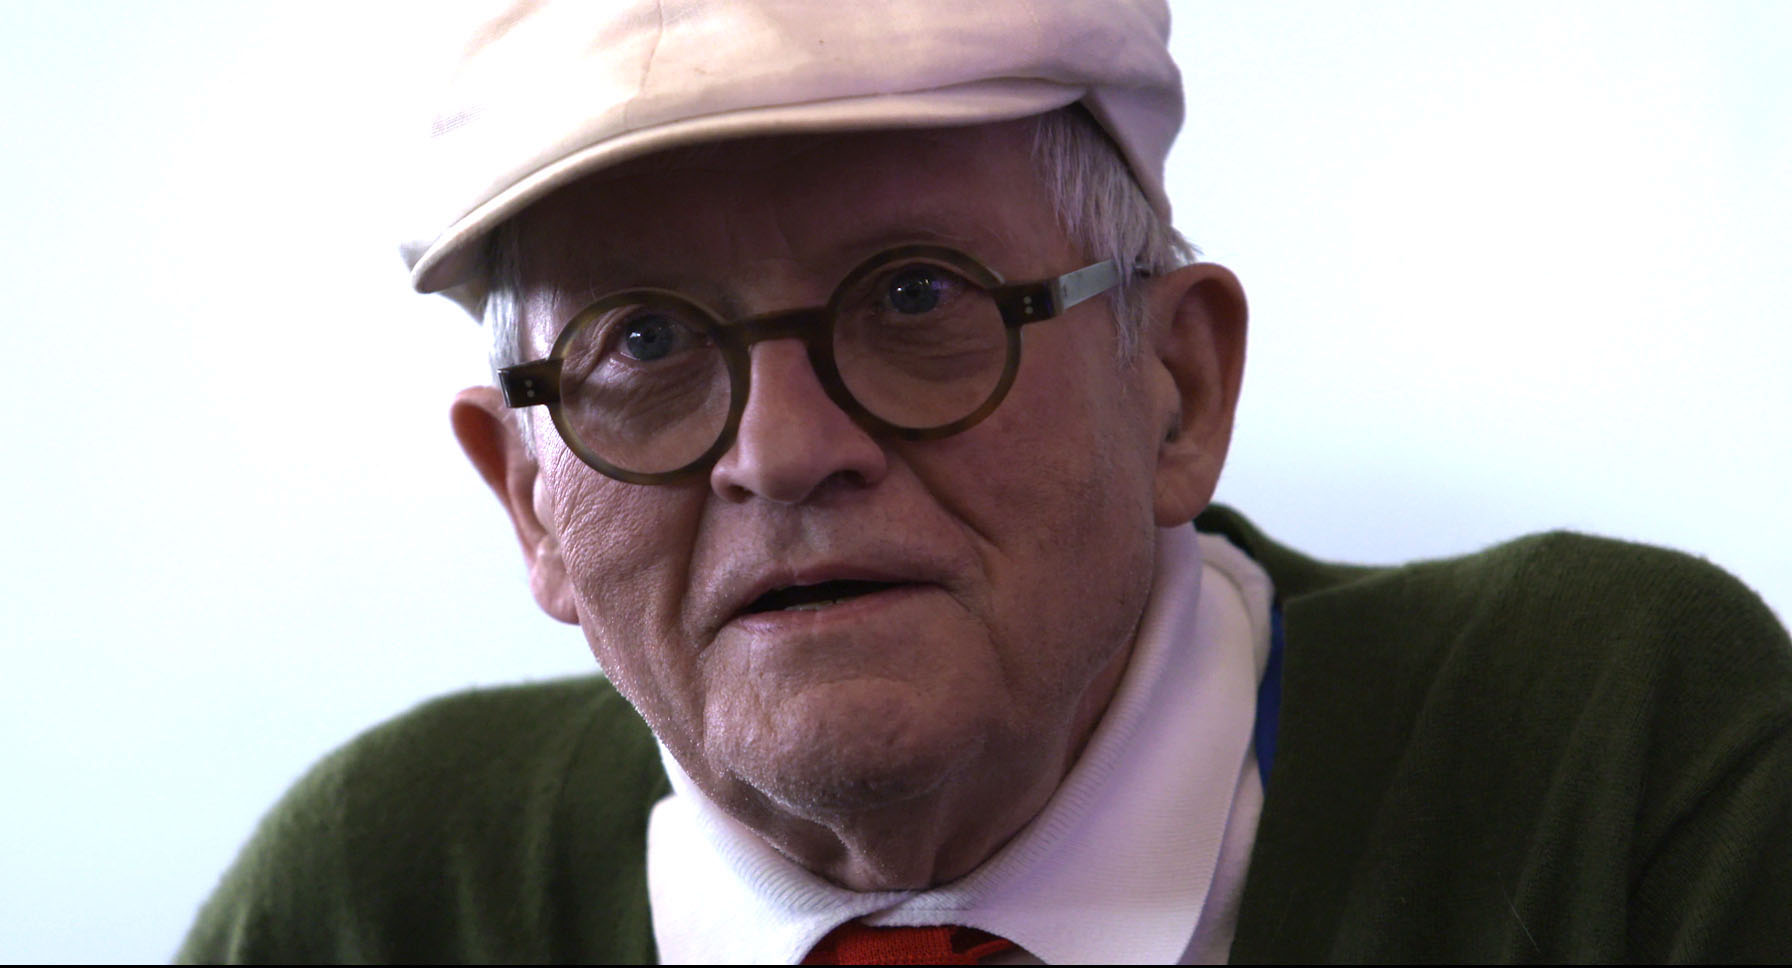 David Hockney in prima visione su Rai 5. E poi l'Art Night con Angeli, Festa e Schifano